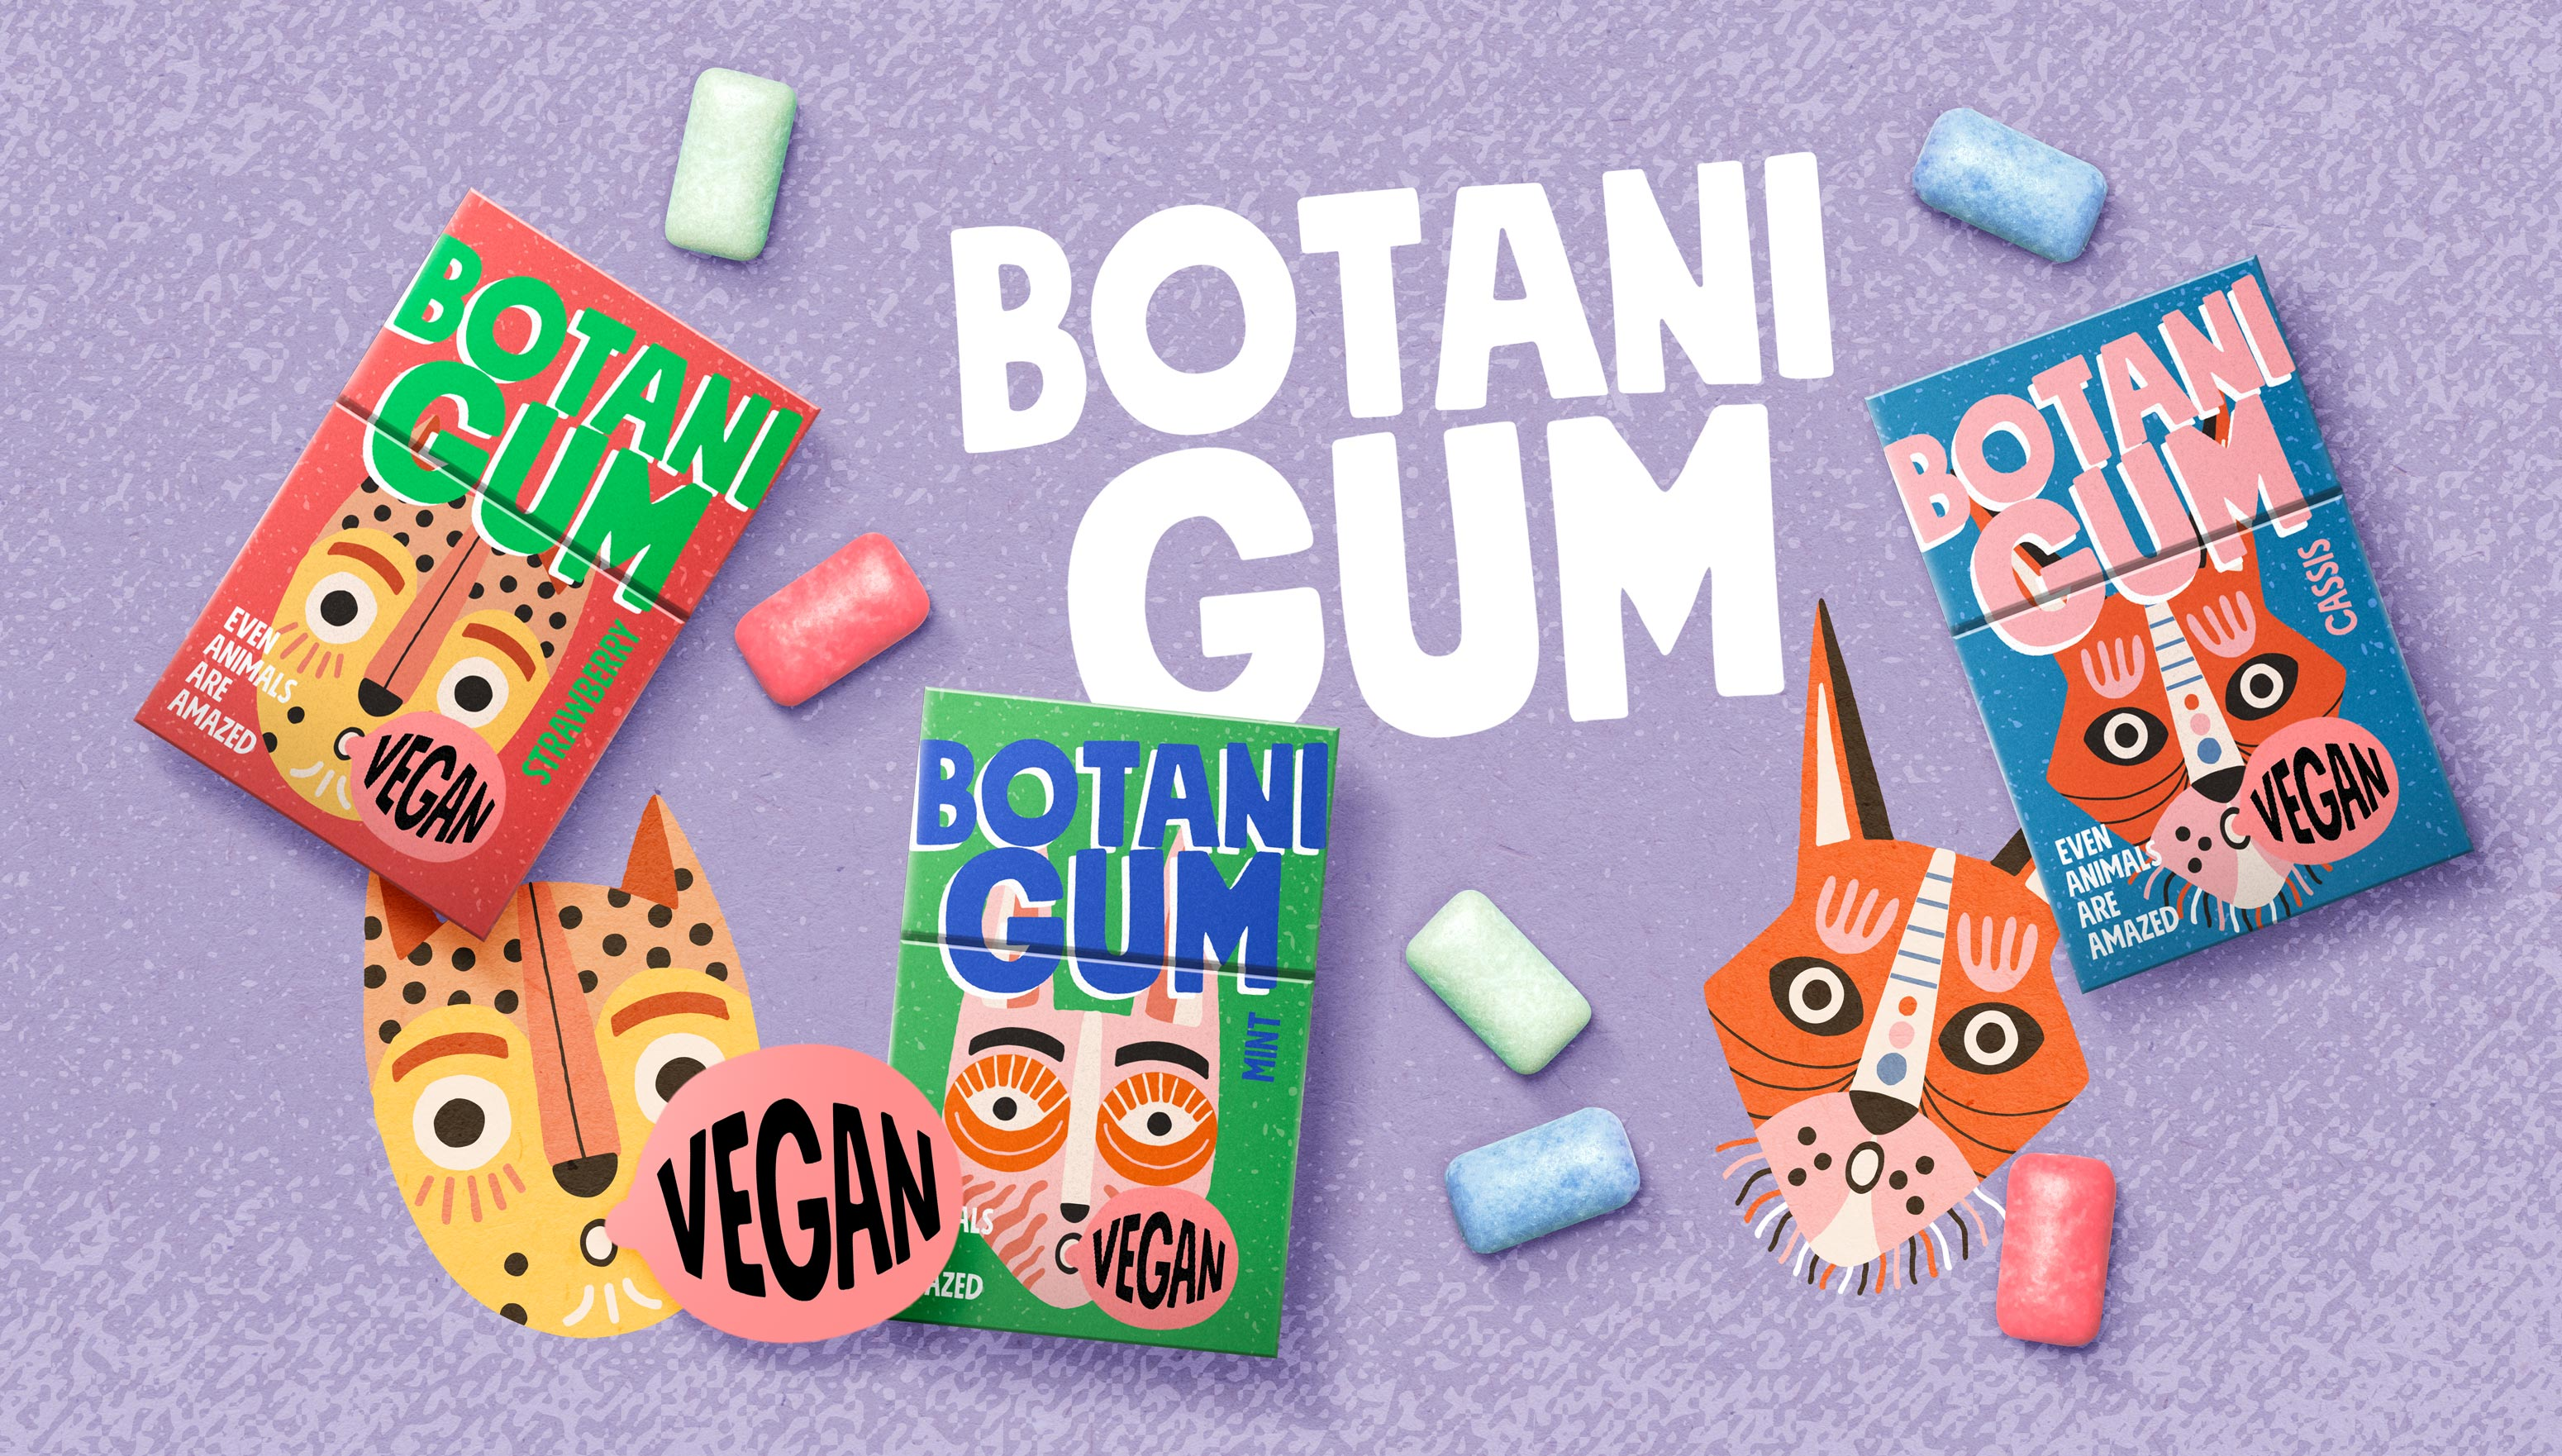 Win Creating Images Created Botani Gum Brand and Packaging Design